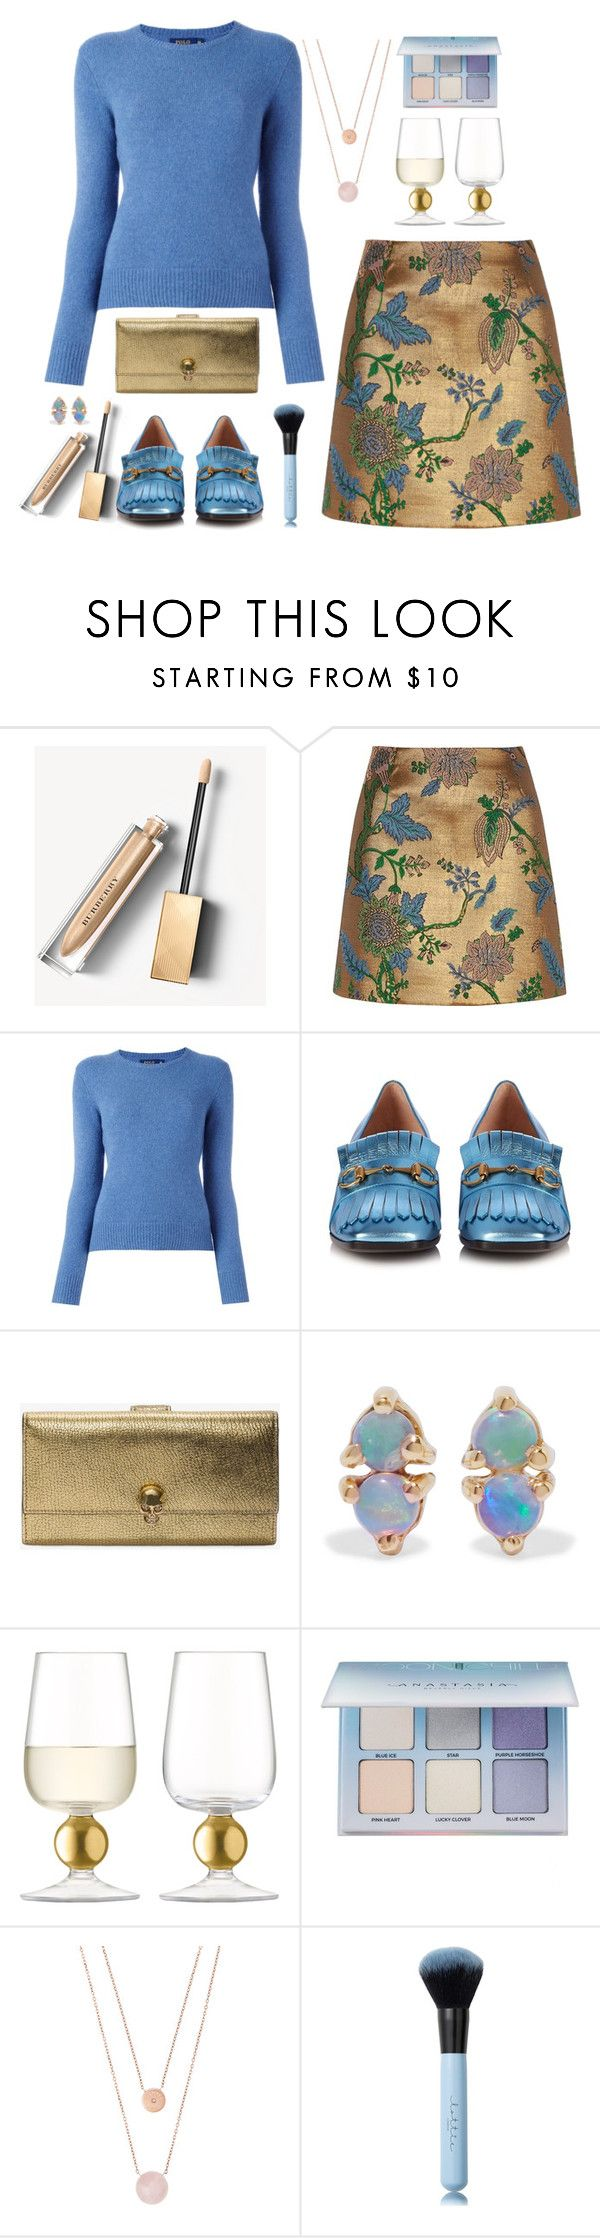 """""""River Island Gold floral embroidered mini skirt"""" by kimzarad1 ❤ liked on Polyvore featuring Burberry, River Island, Polo Ralph Lauren, Gucci, Alexander McQueen, WWAKE, LSA International, Anastasia Beverly Hills and Michael Kors"""